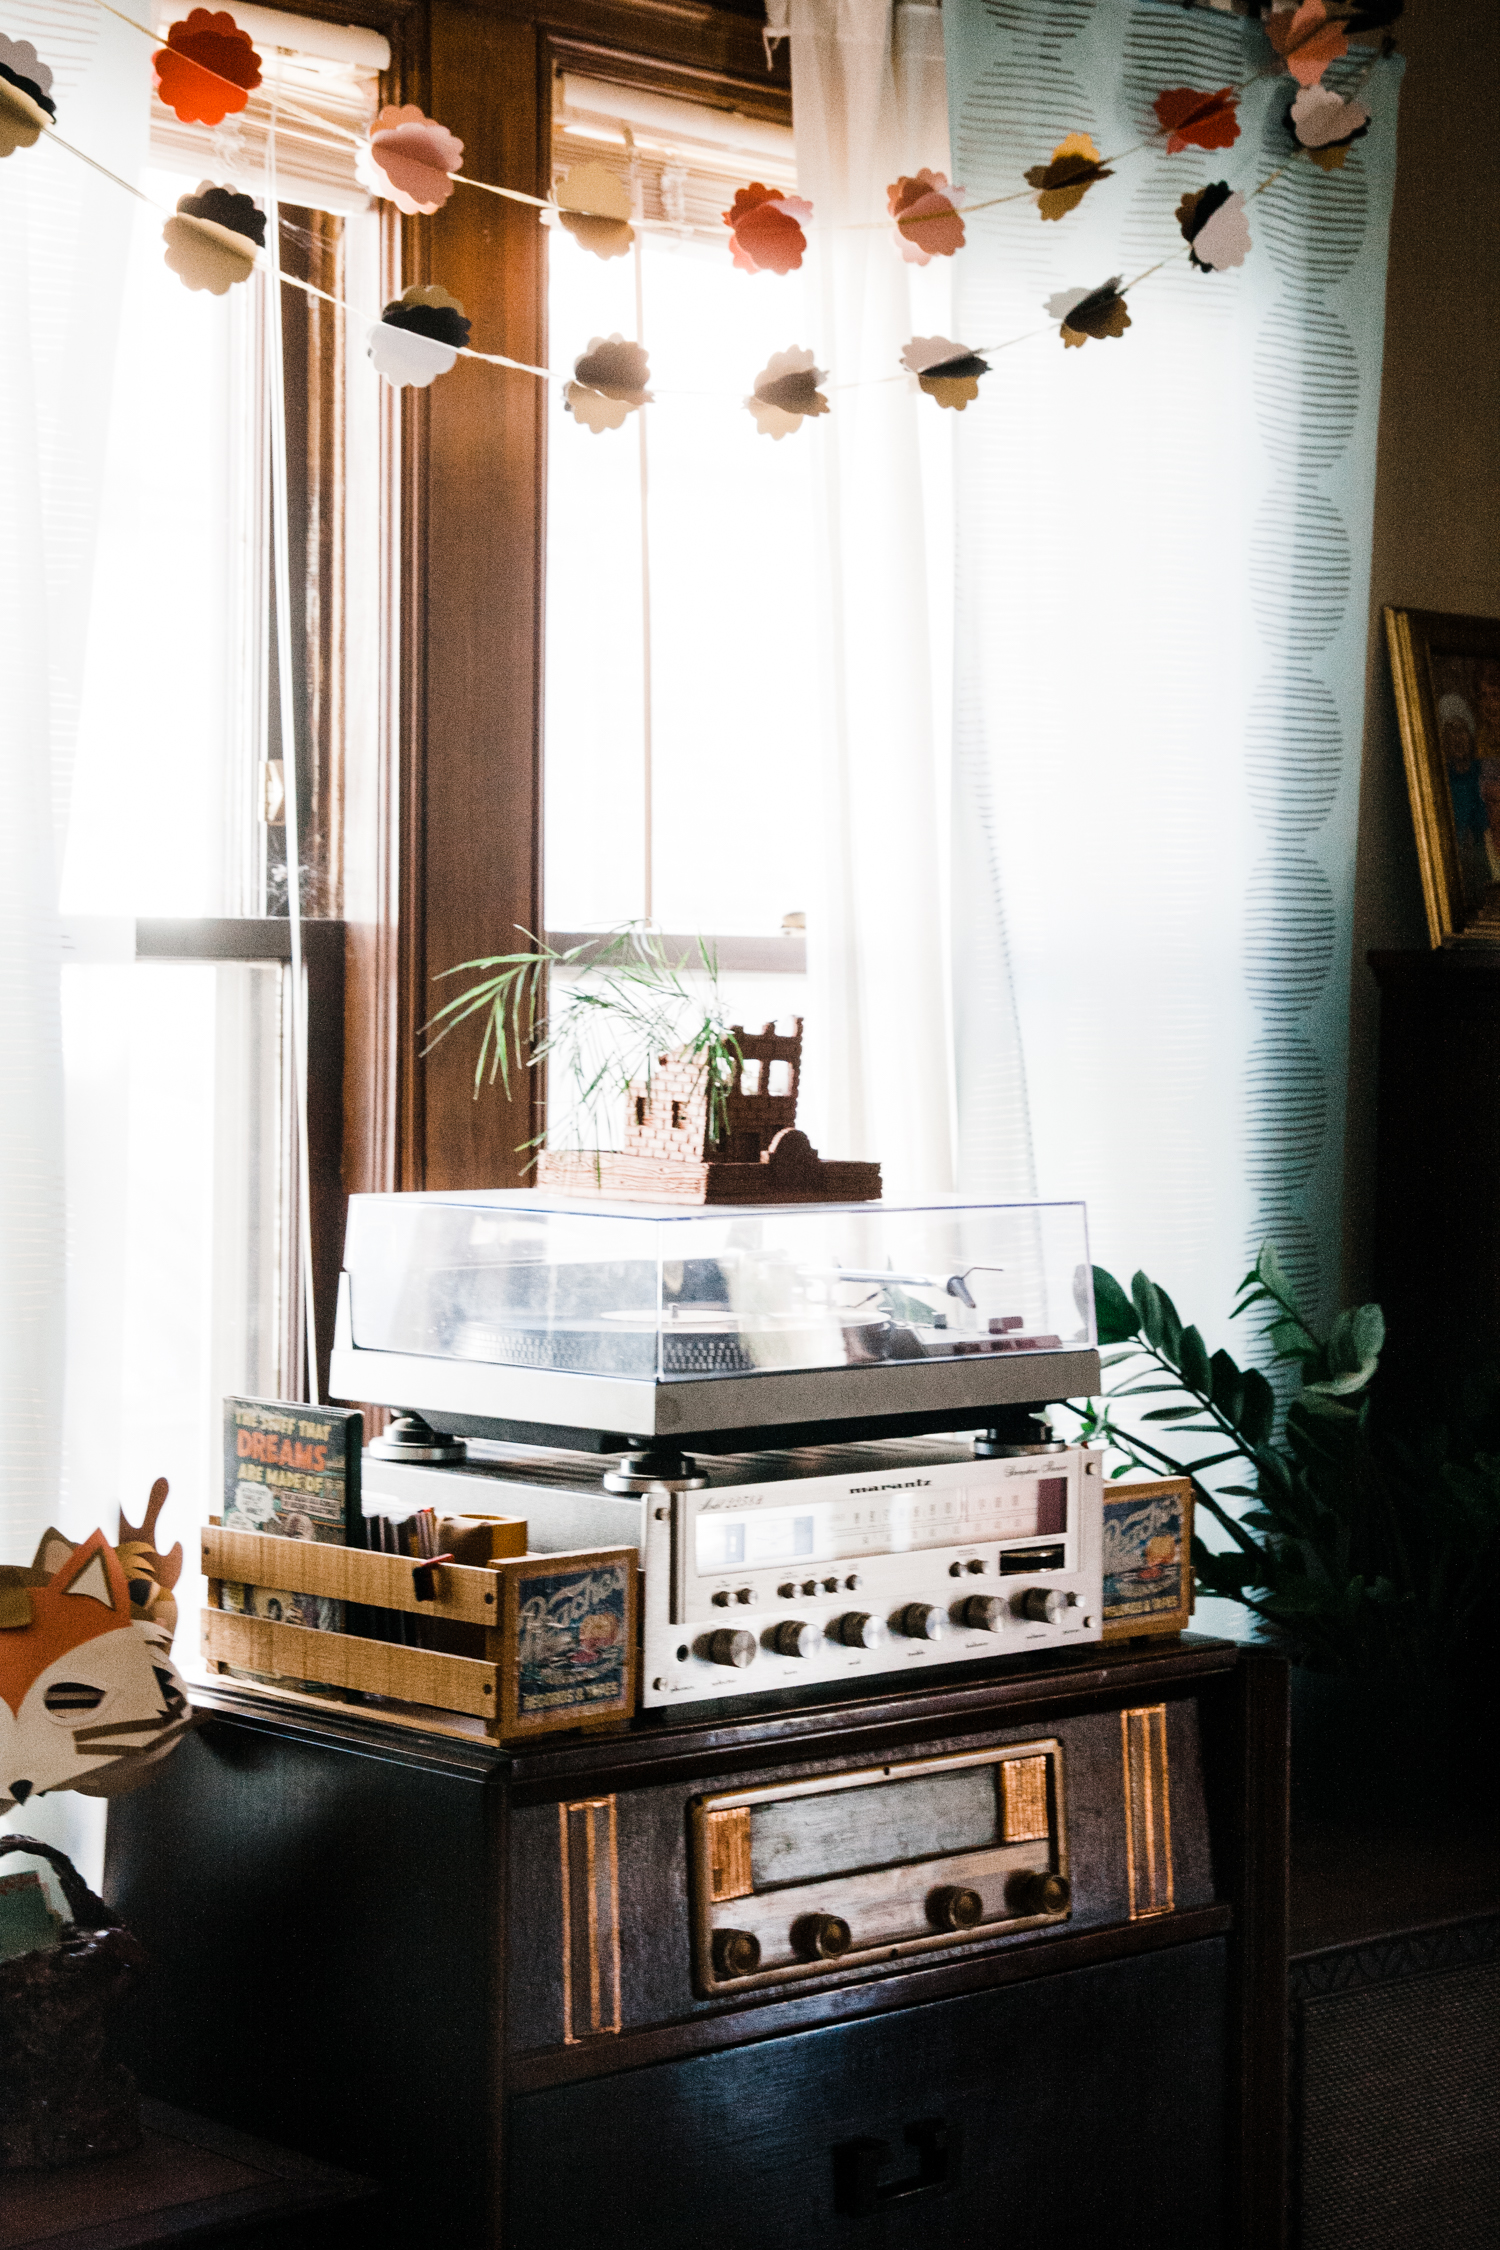 Allison made the crumbling building planter that sits atop the record player.